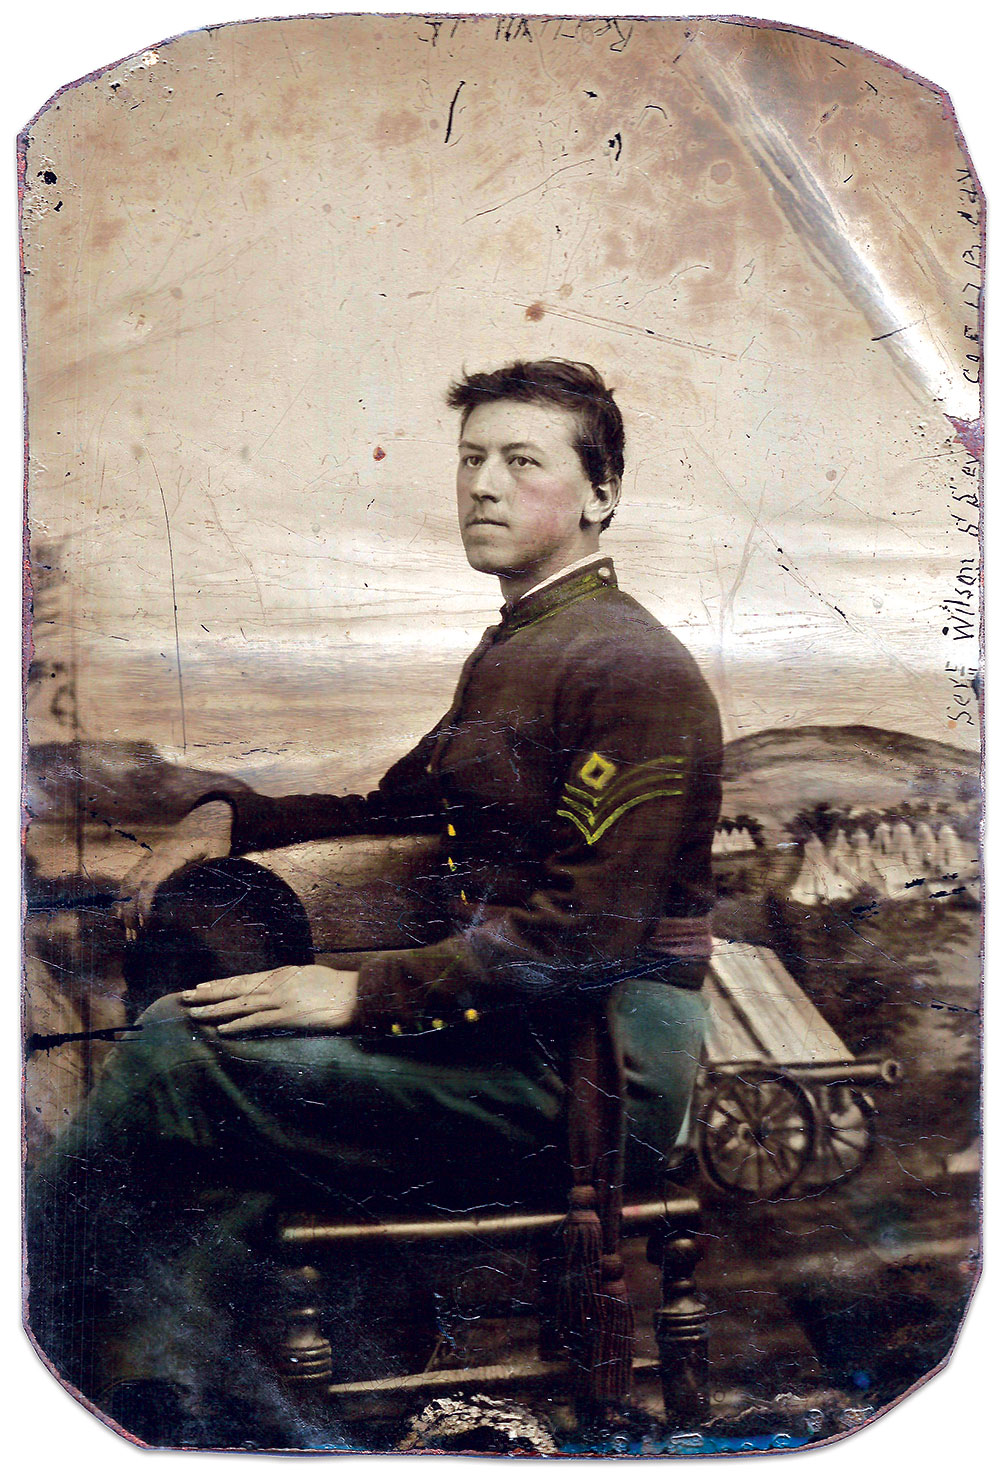 Sixth-plate tintype by an anonymous photographer. Britt C. Isenberg Collection.